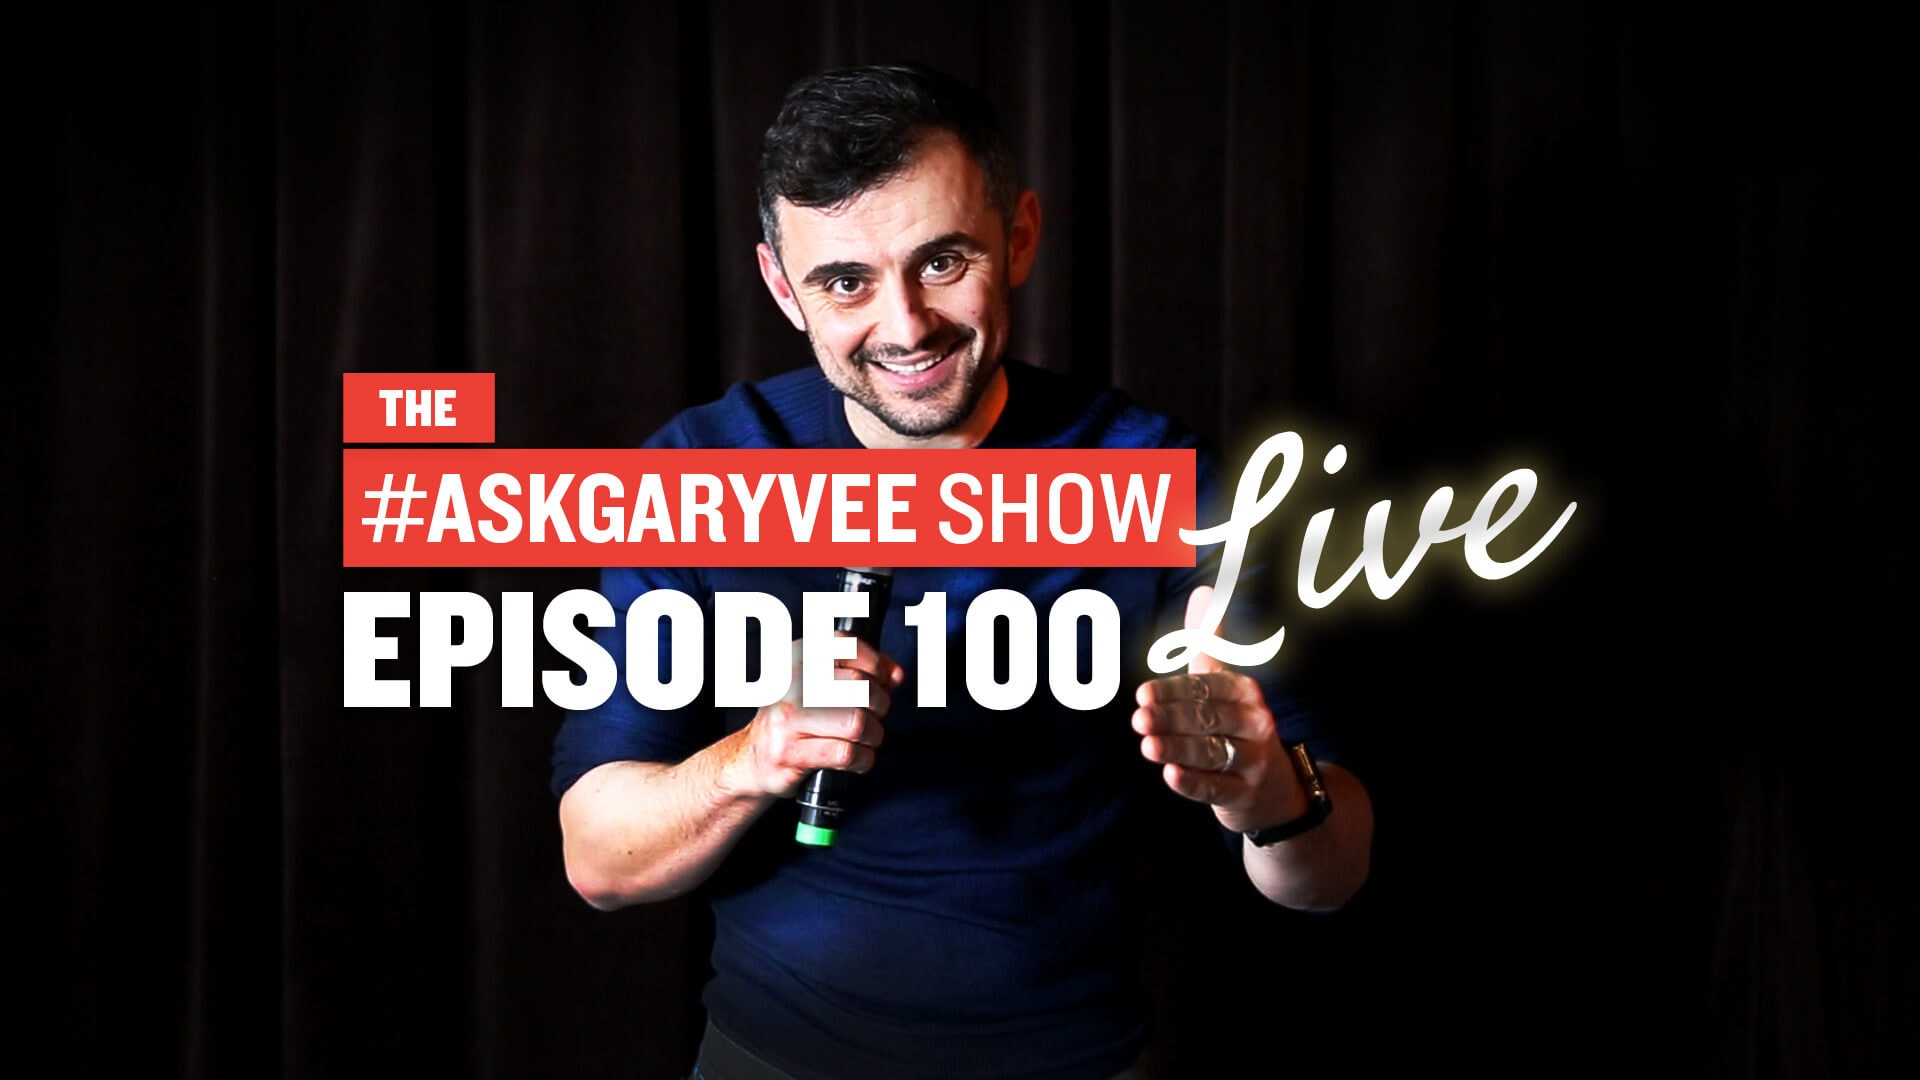 The 100th Episode of the #AskGaryVee Show